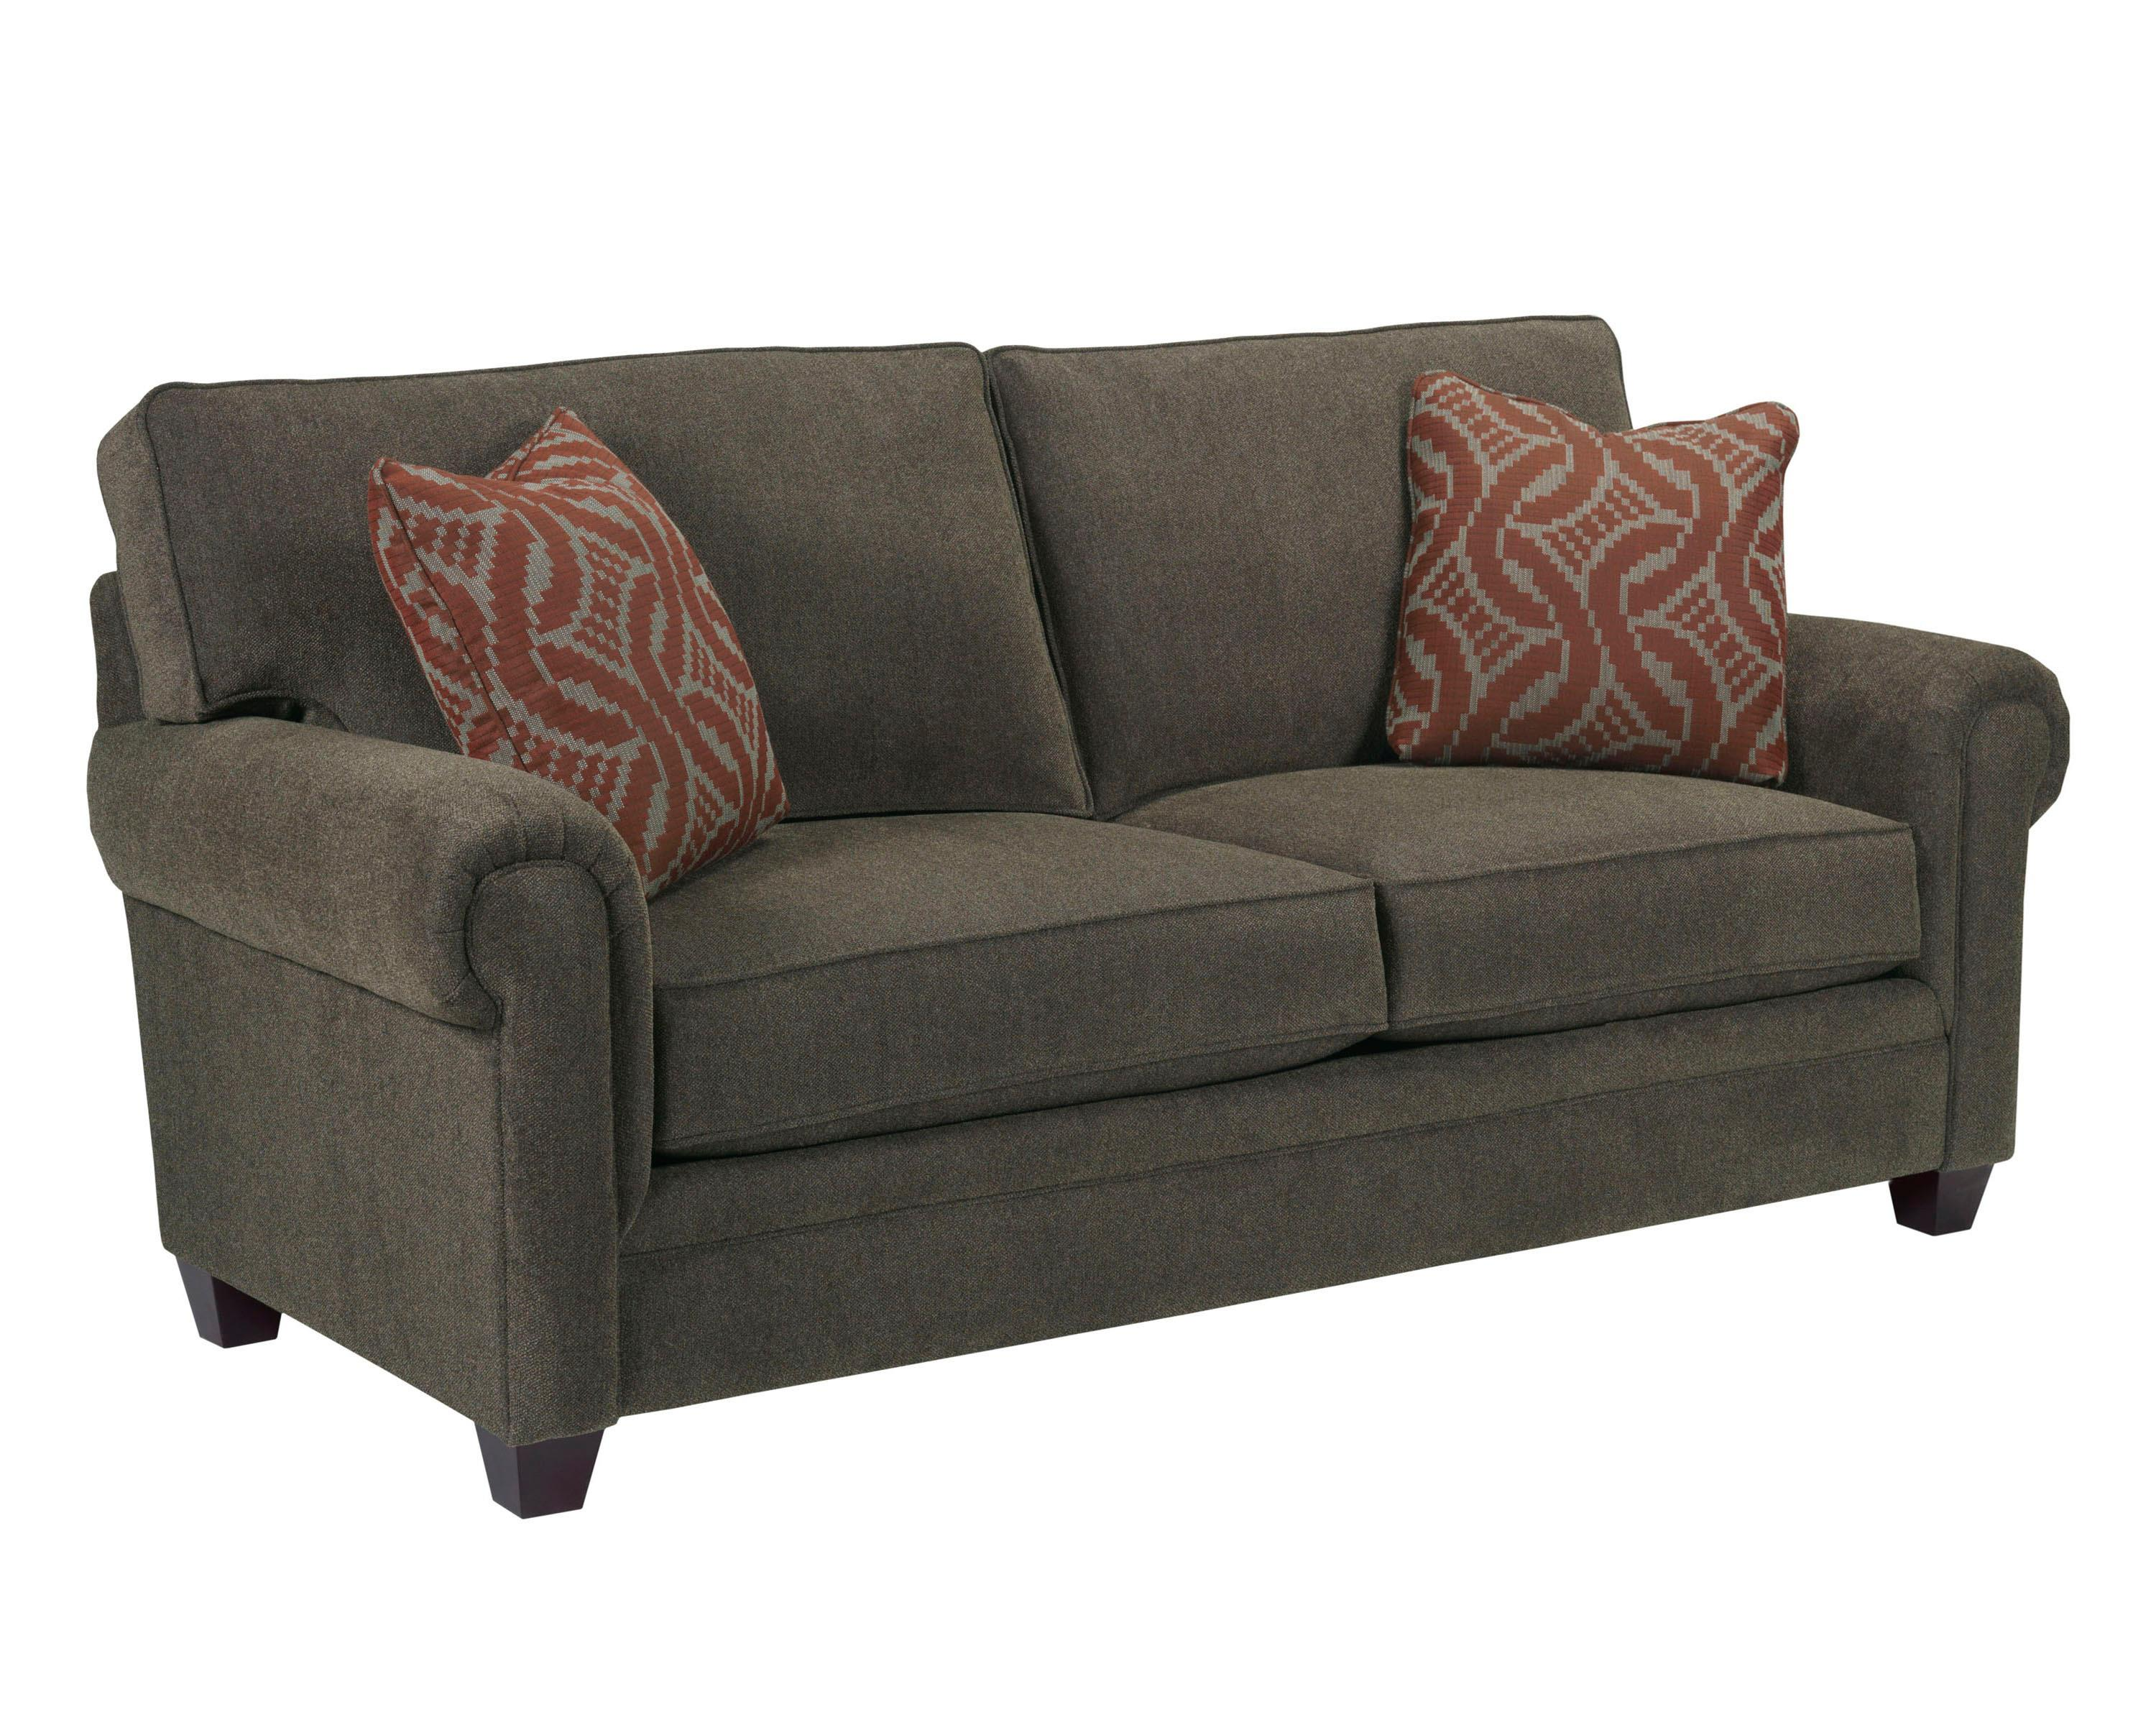 Broyhill Furniture Monica Loveseat - Item Number: 3678-1